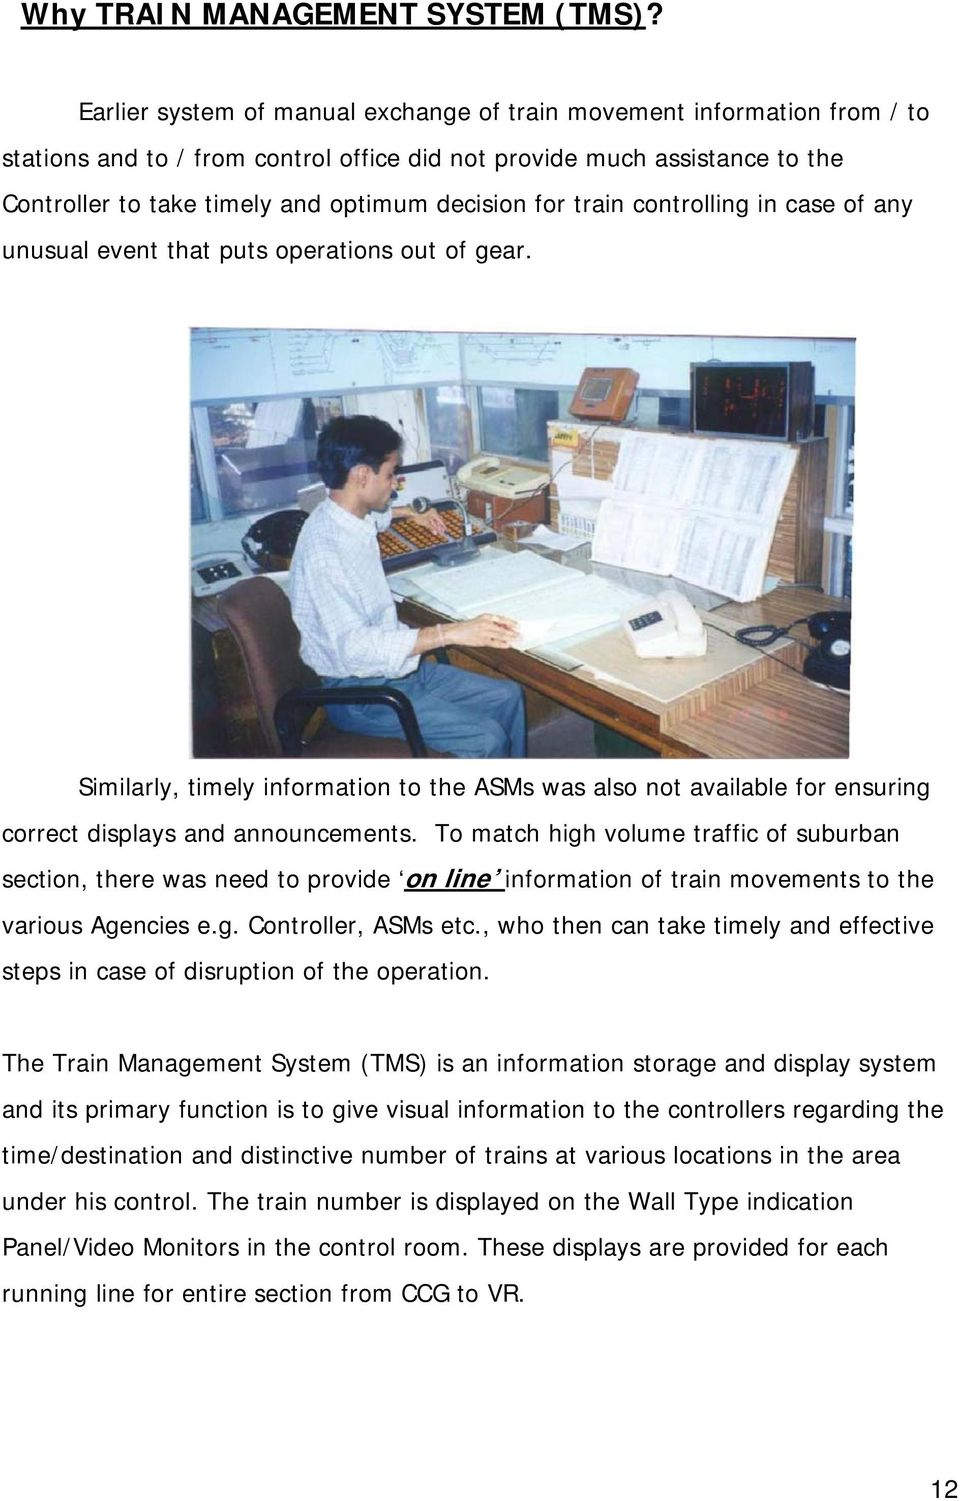 An Introduction To Train Management System Of Western Railway Pdf Picaxe Model Railroad Speed Controller For Controlling In Case Any Unusual Event That Puts Operations Out Gear